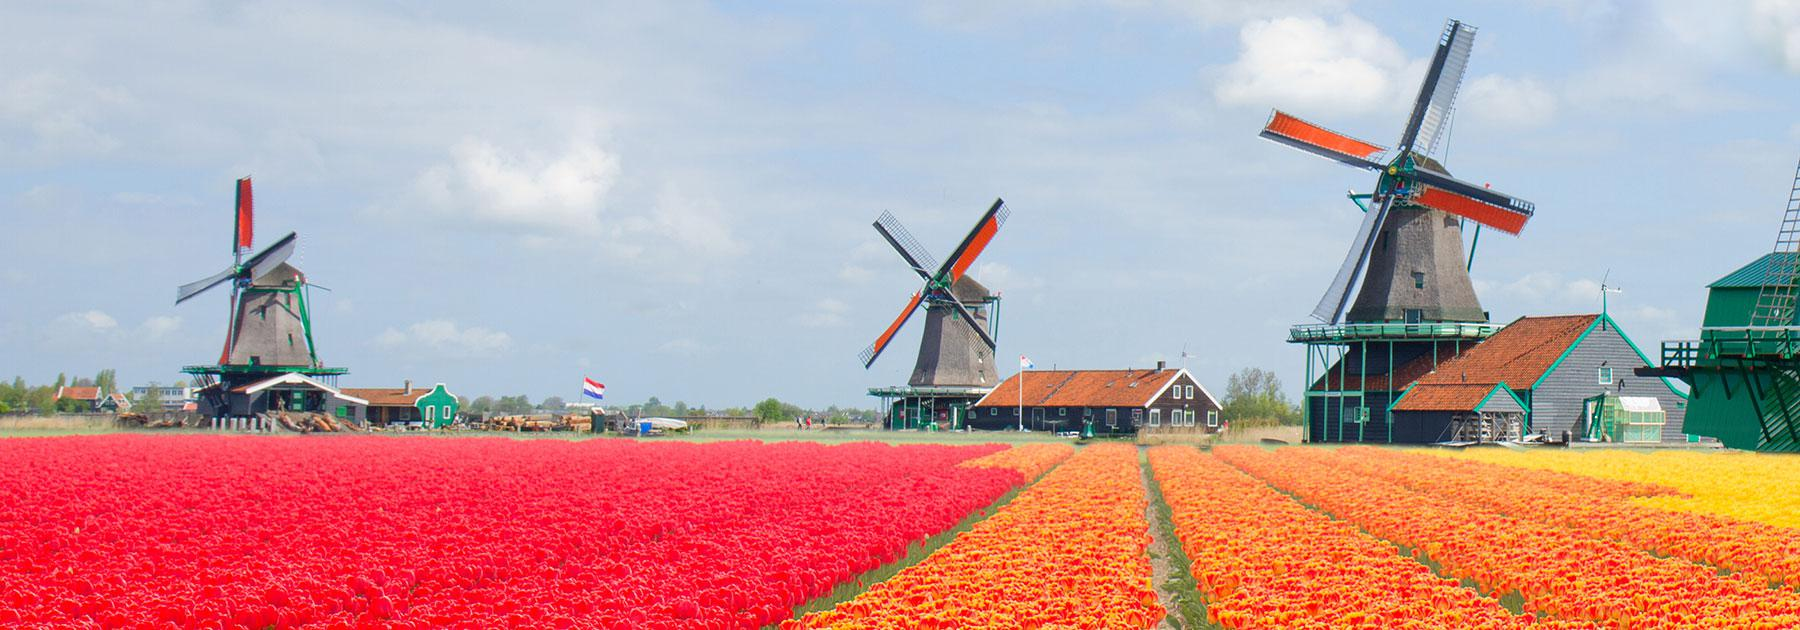 Netherlands Vacations With Airfare Trip To Netherlands From Go Today